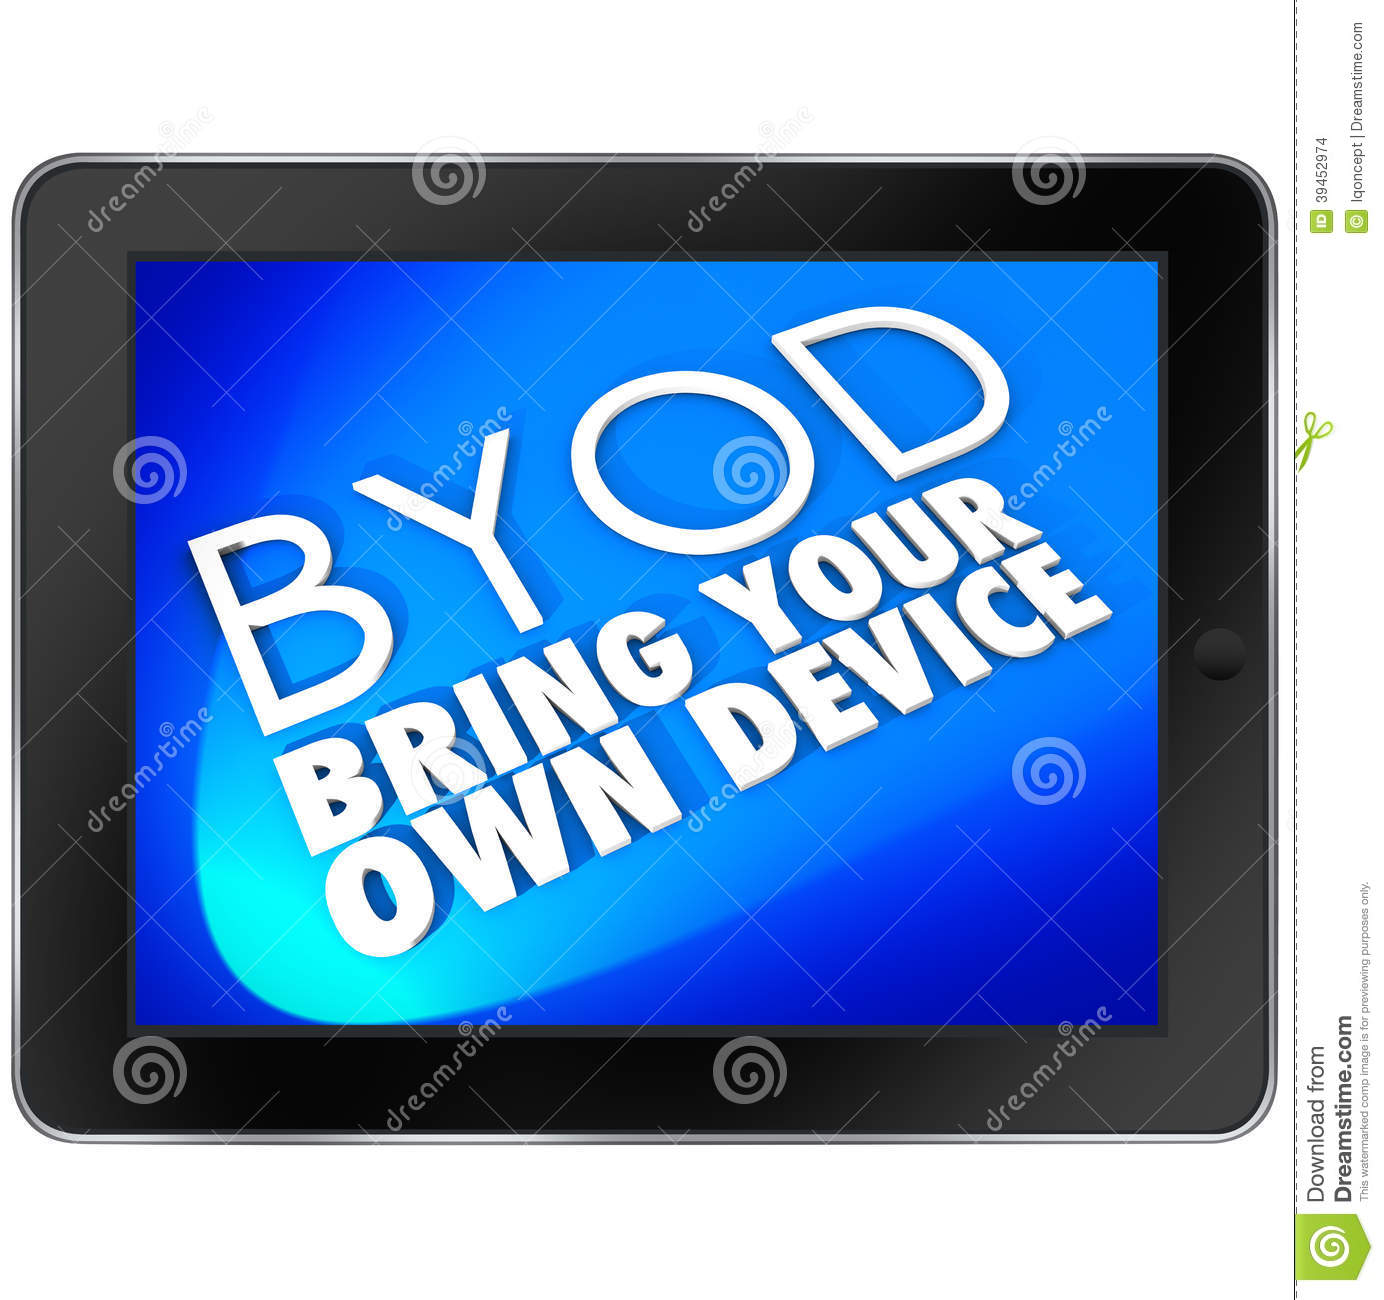 BYOD Tablet Computer Blue Screen Bring Your Own Device Acronym